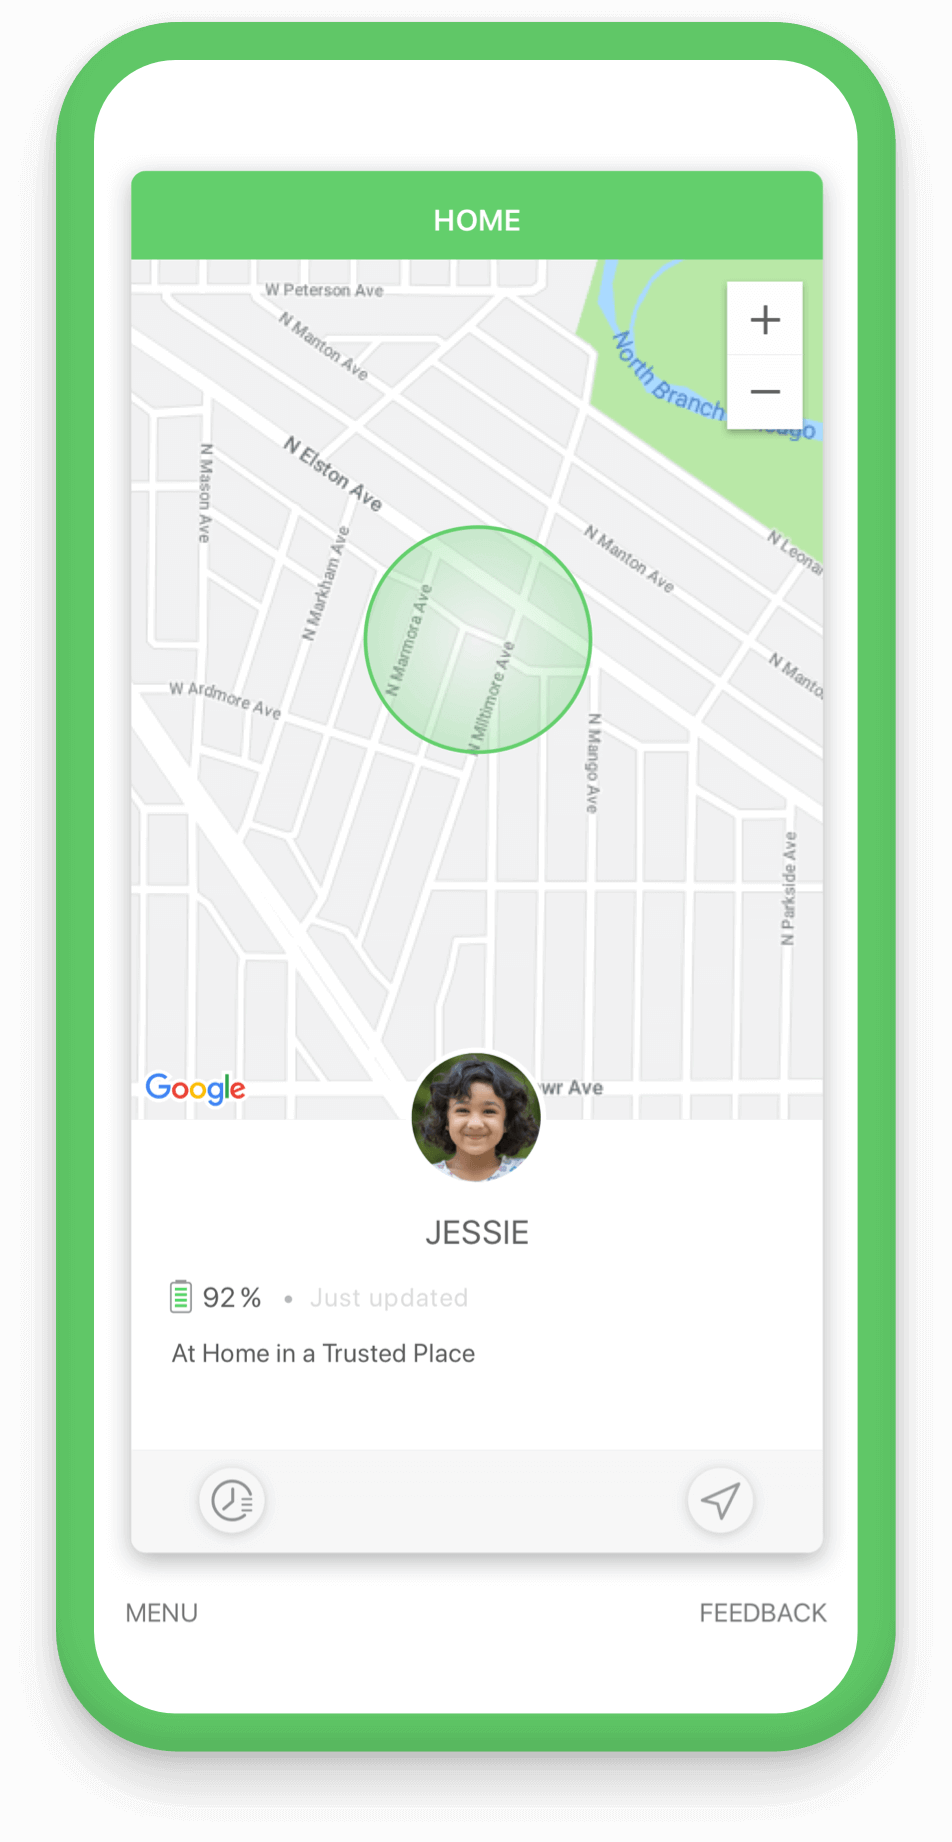 Set up trusted places in the app and know when they arrived